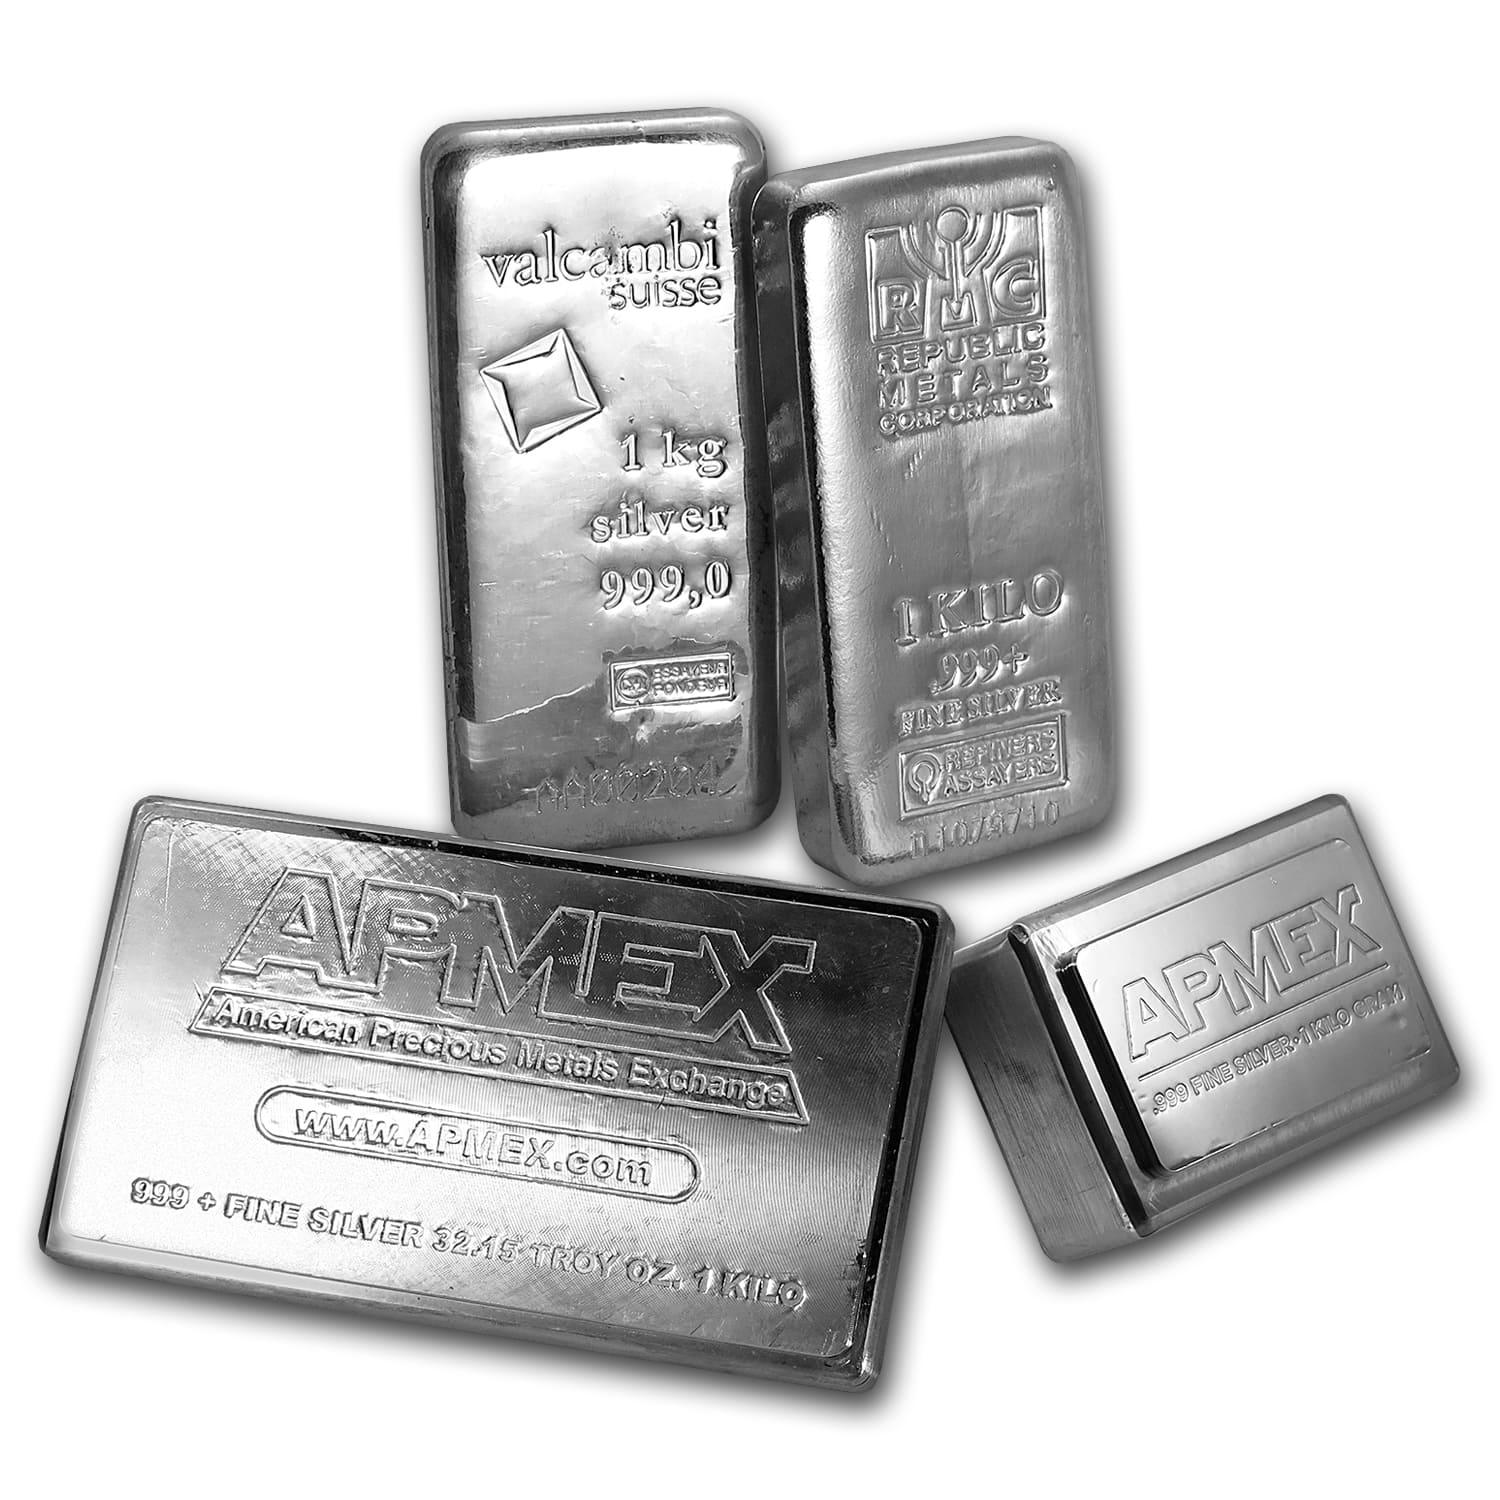 1 kilo Silver Bar - Secondary Market